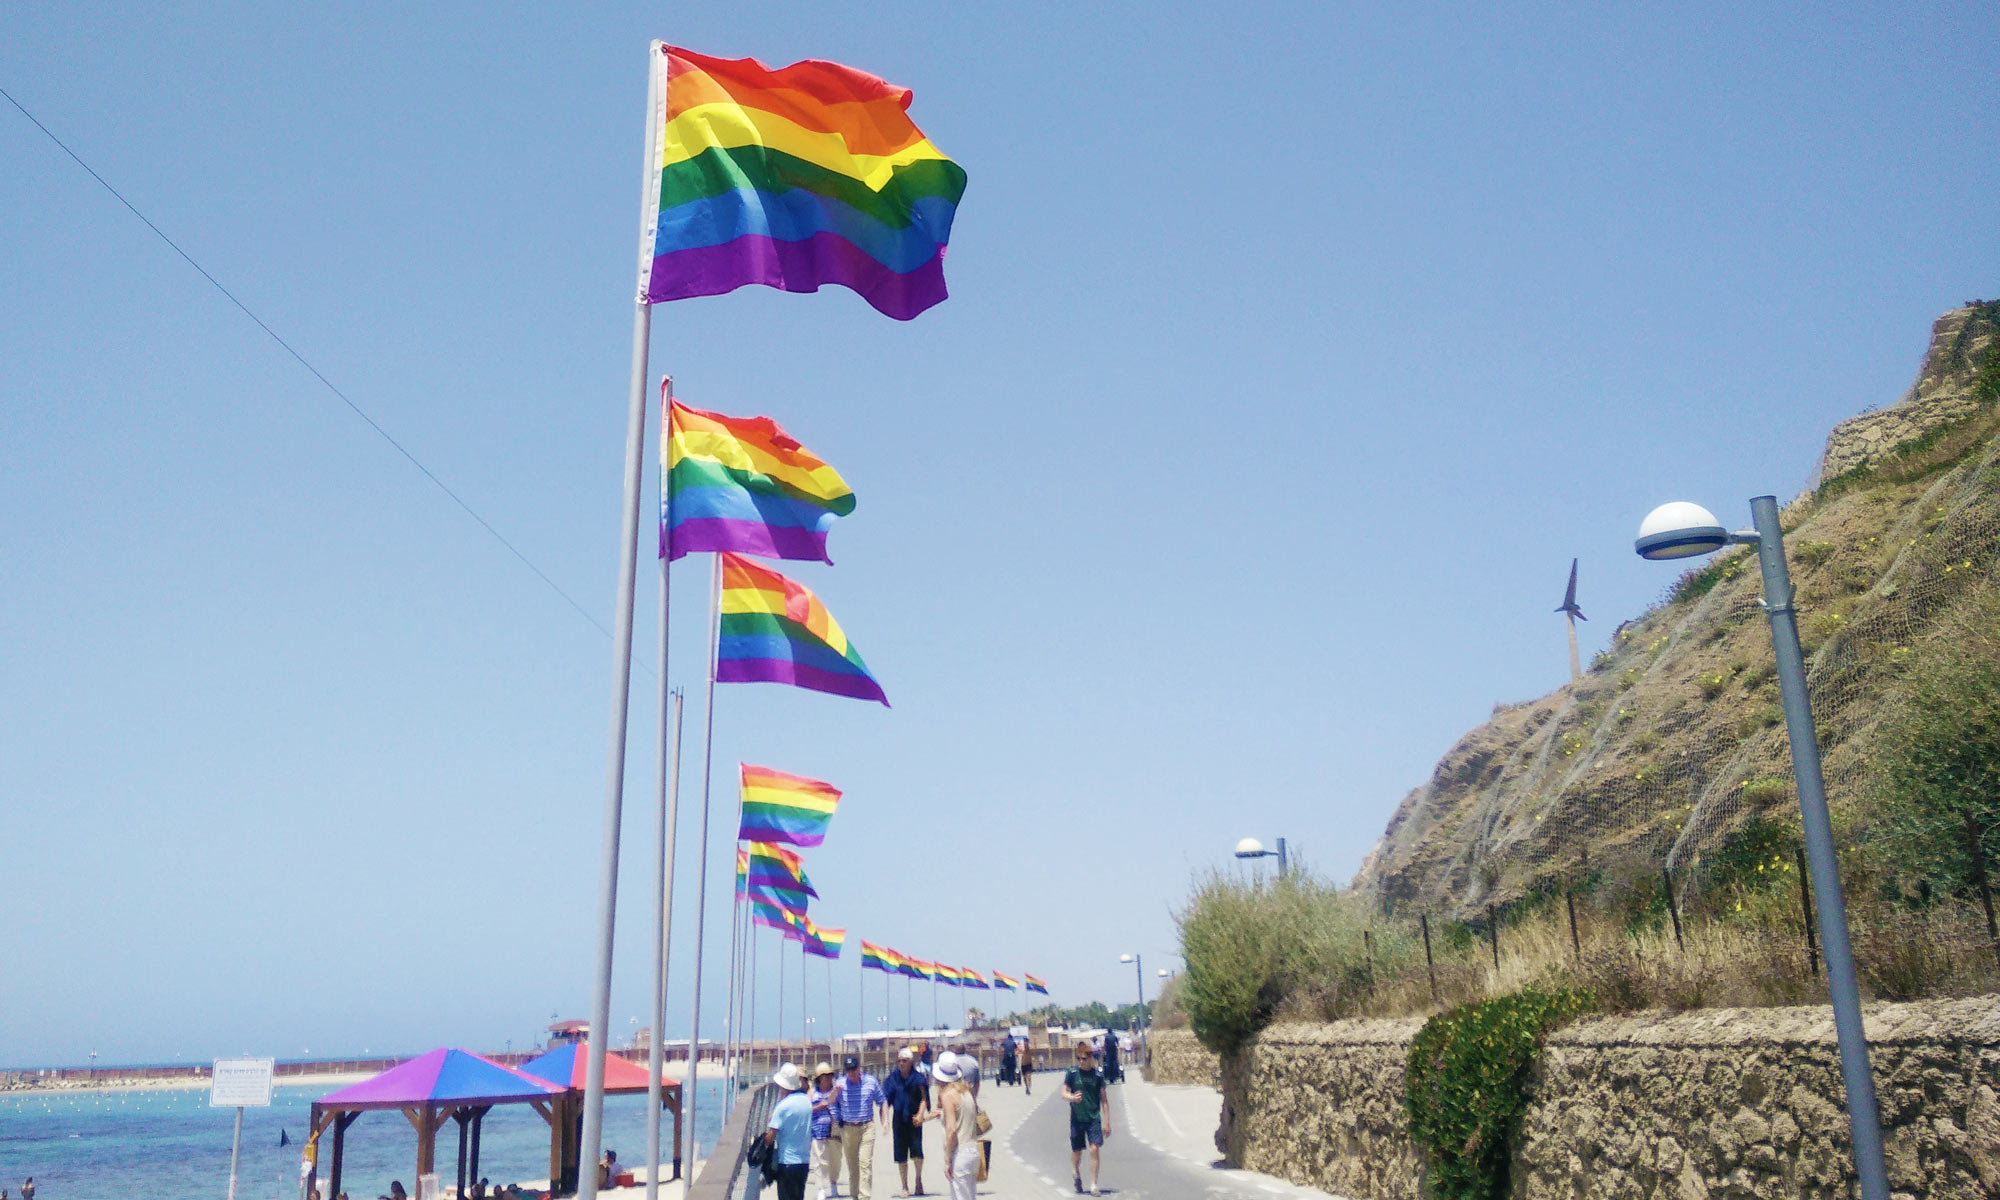 rainbow flags at the gay beach called Hilton Beach in Tel Aviv